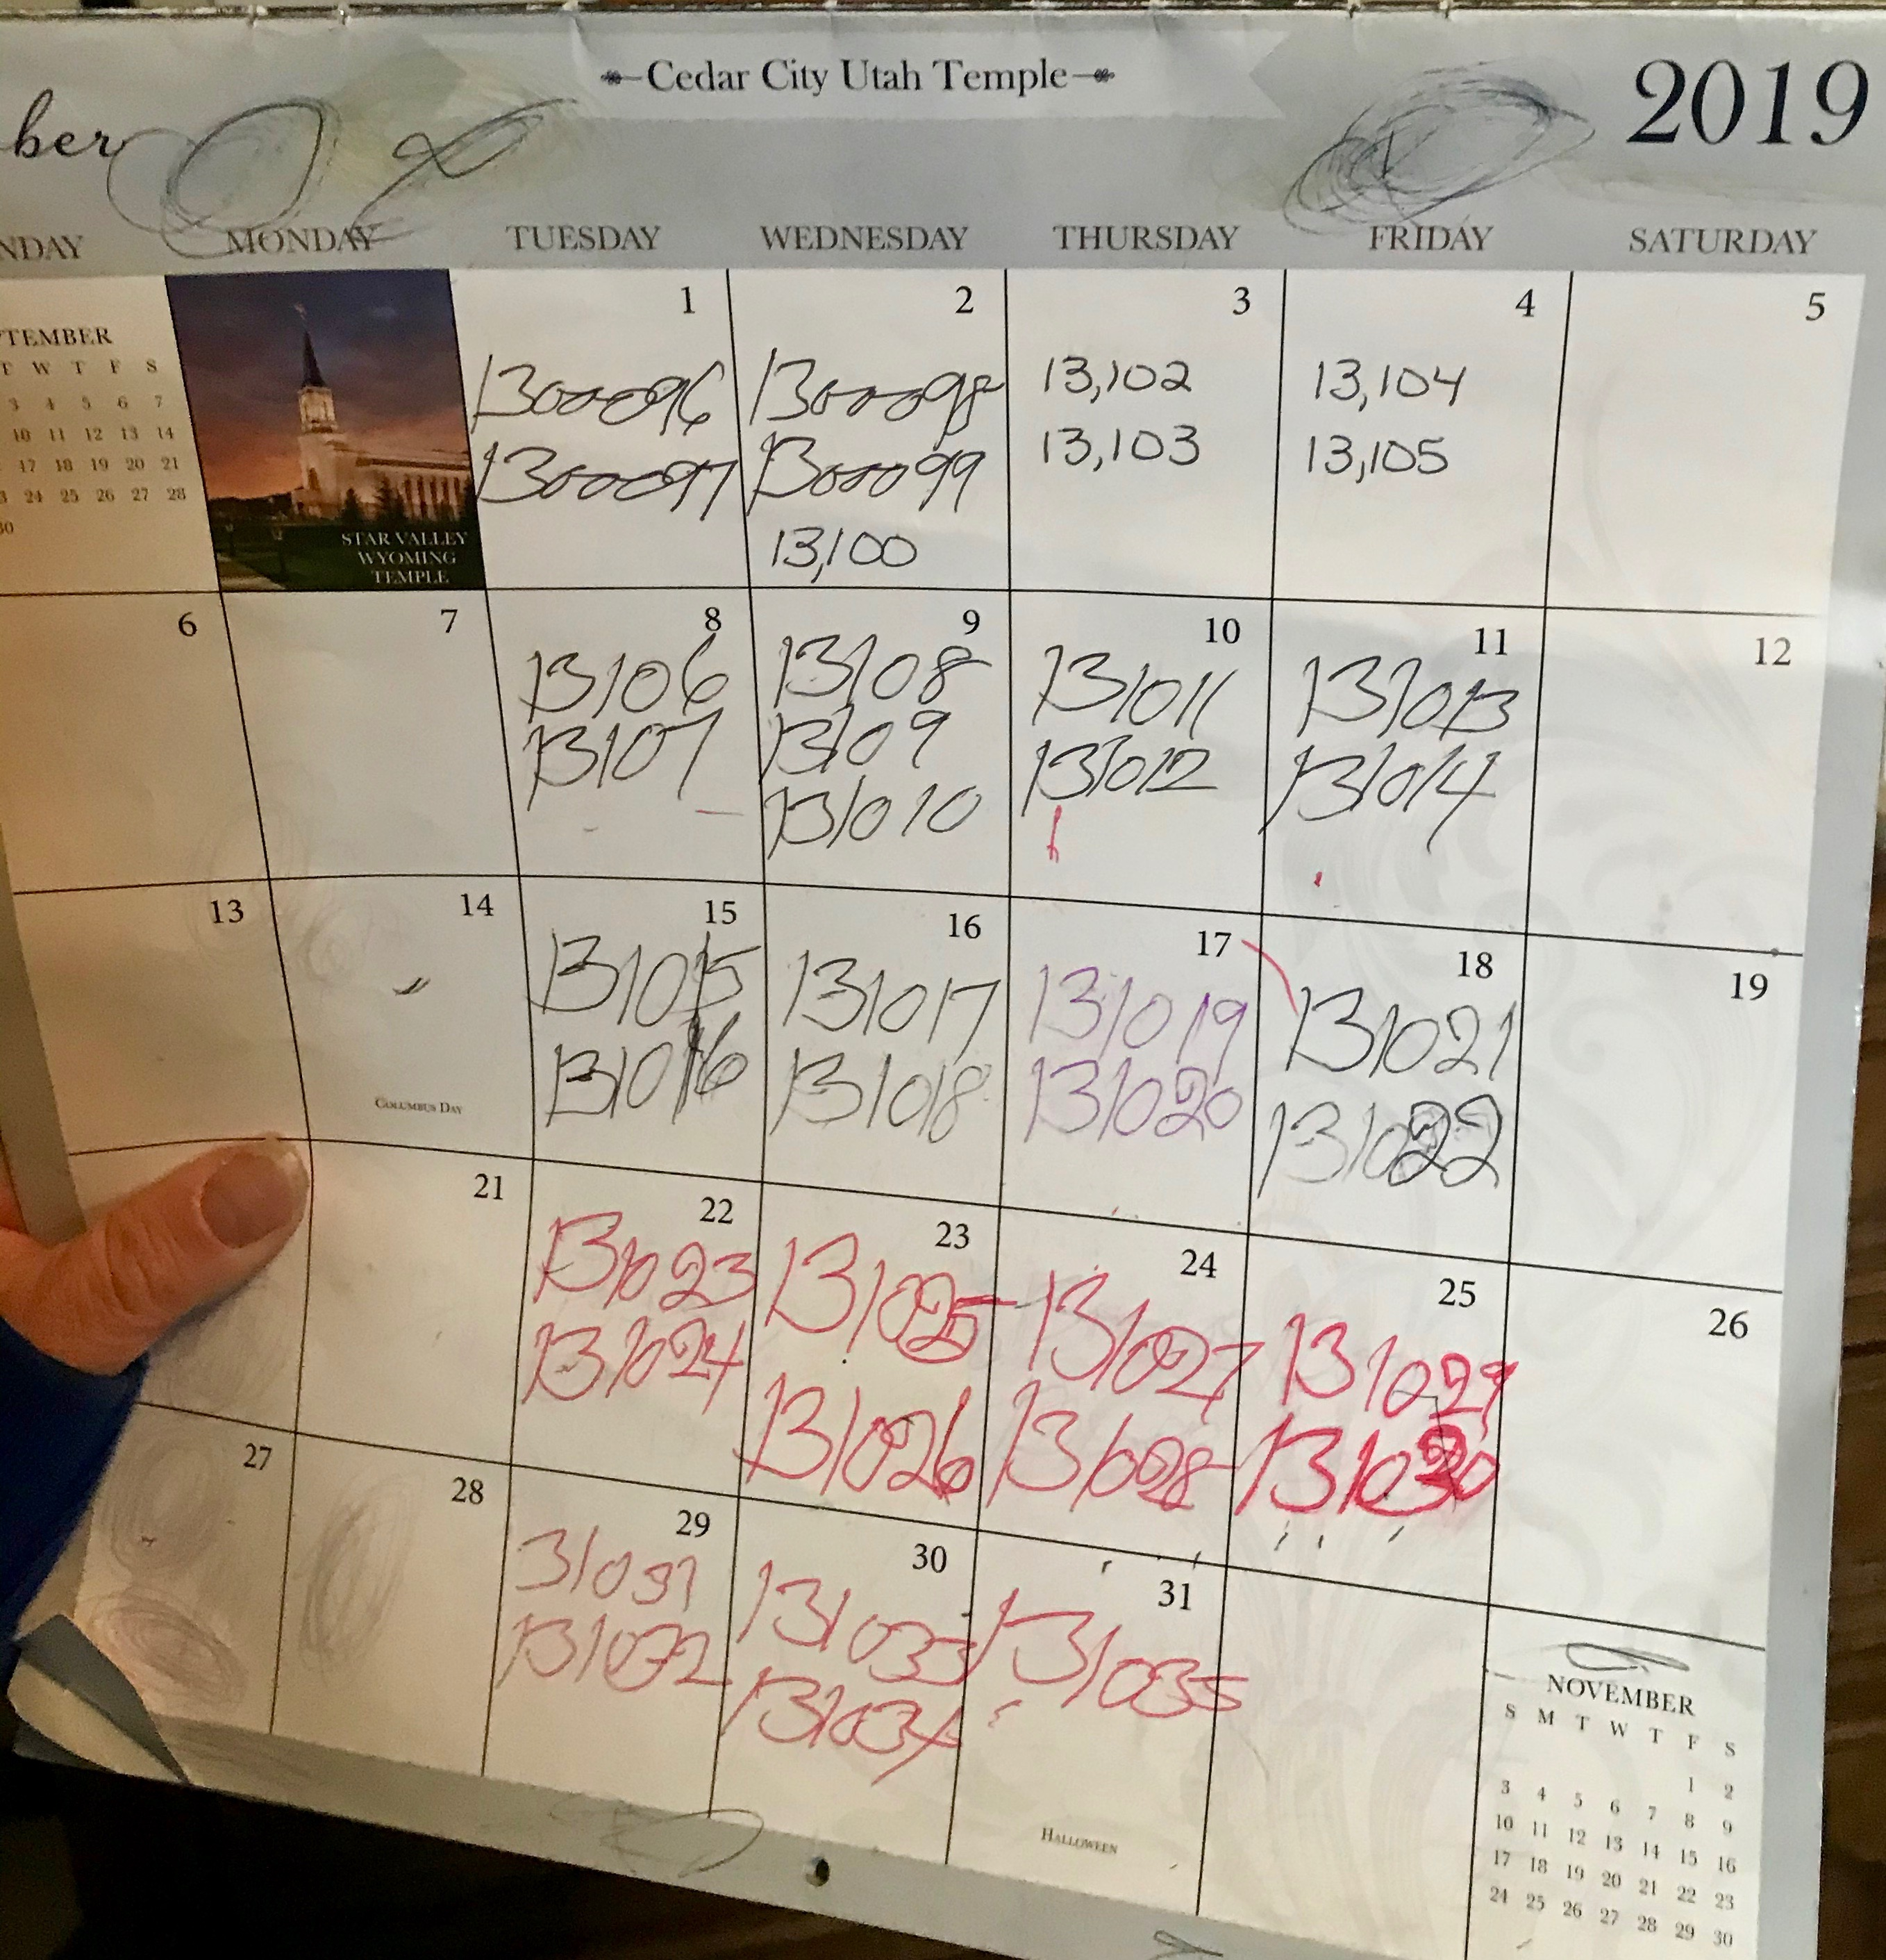 Dennis Preece tracks the number of temple endowment sessions he does on a calendar.